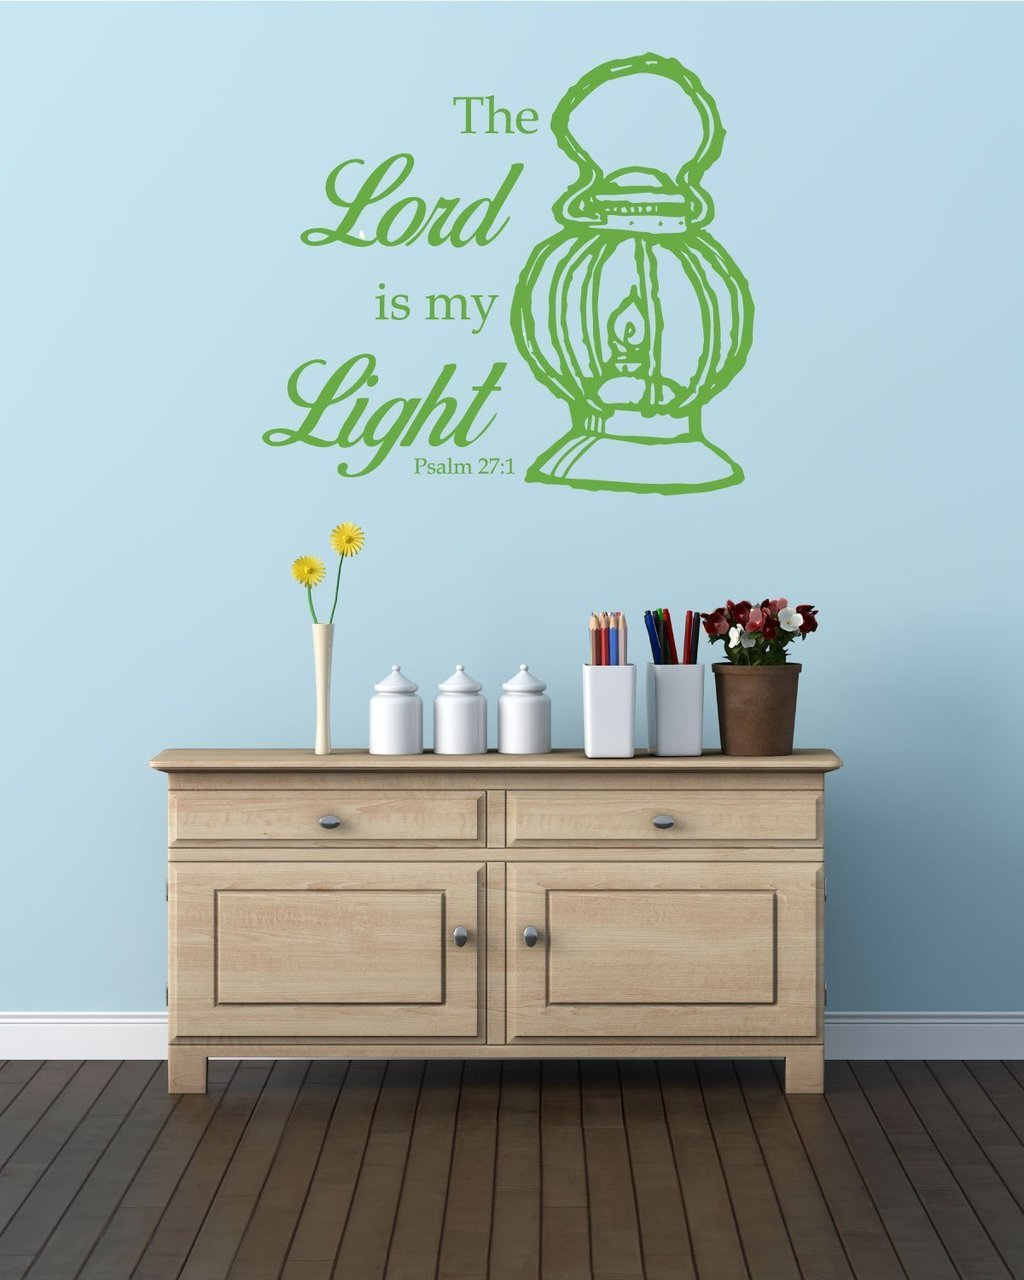 Bible Verse Wall Decals - Psalm 27:1 - The Lord is My Light